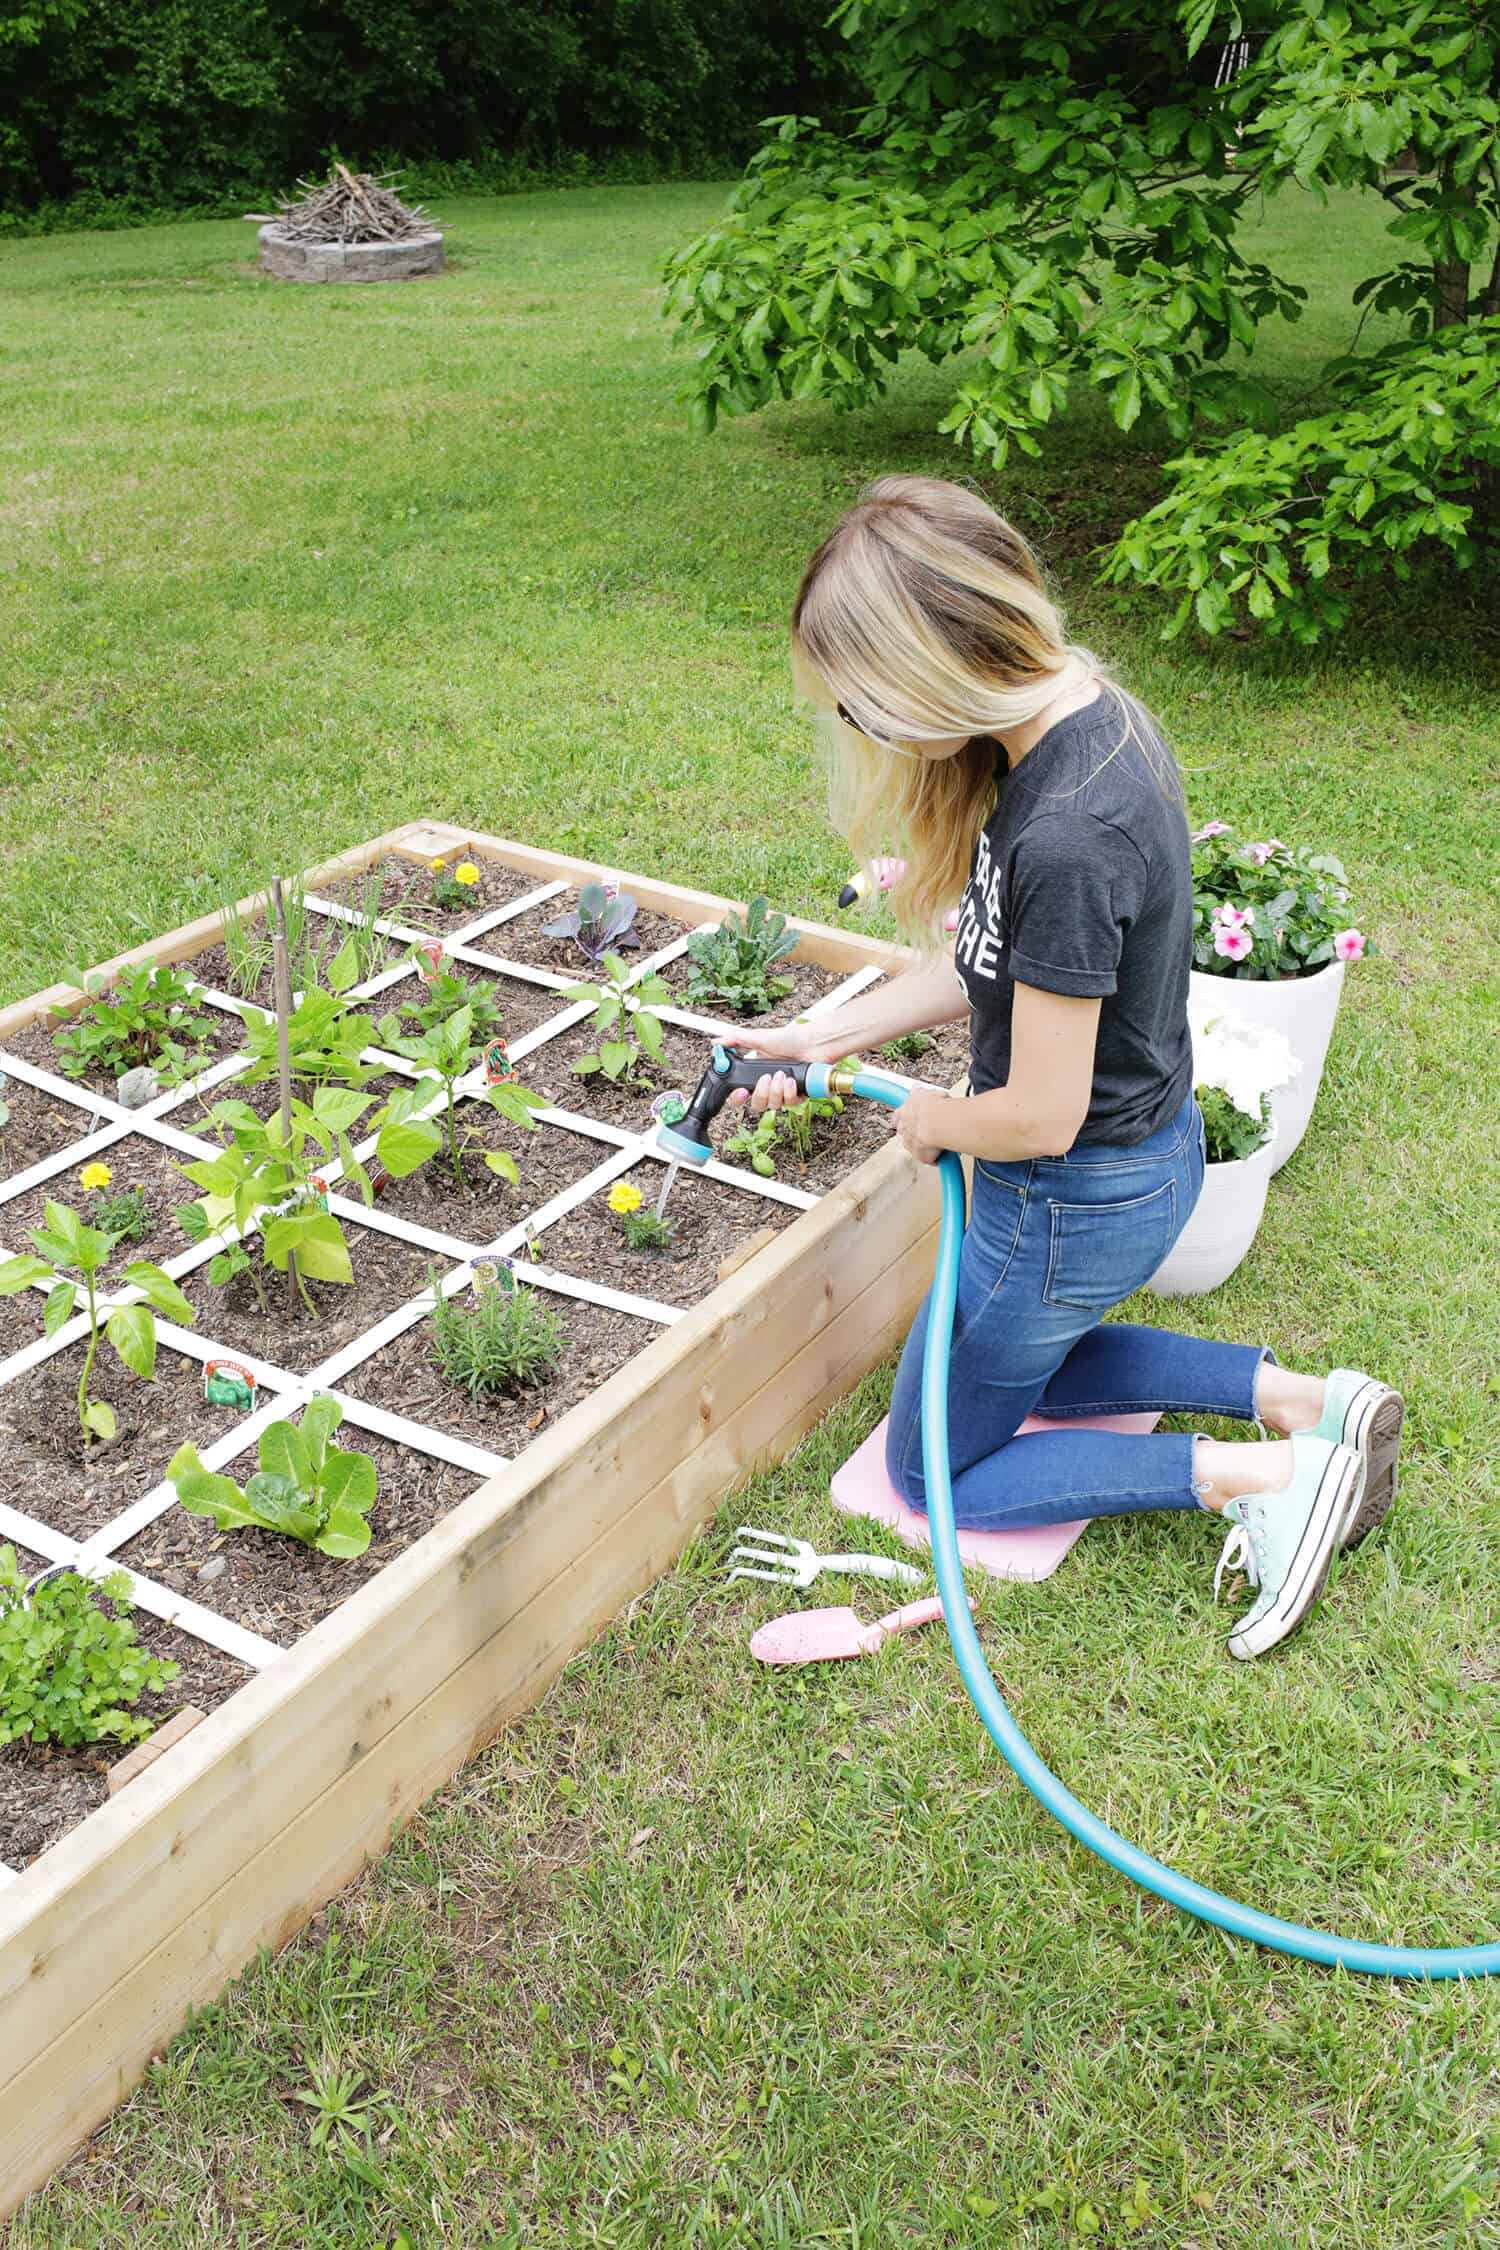 This Post Is Sponsored By Gilmour, A Brand That Makes Simpler Solutions For  Gardening And Watering. When Making The Garden, We Wanted To Plan Ahead On  How ...